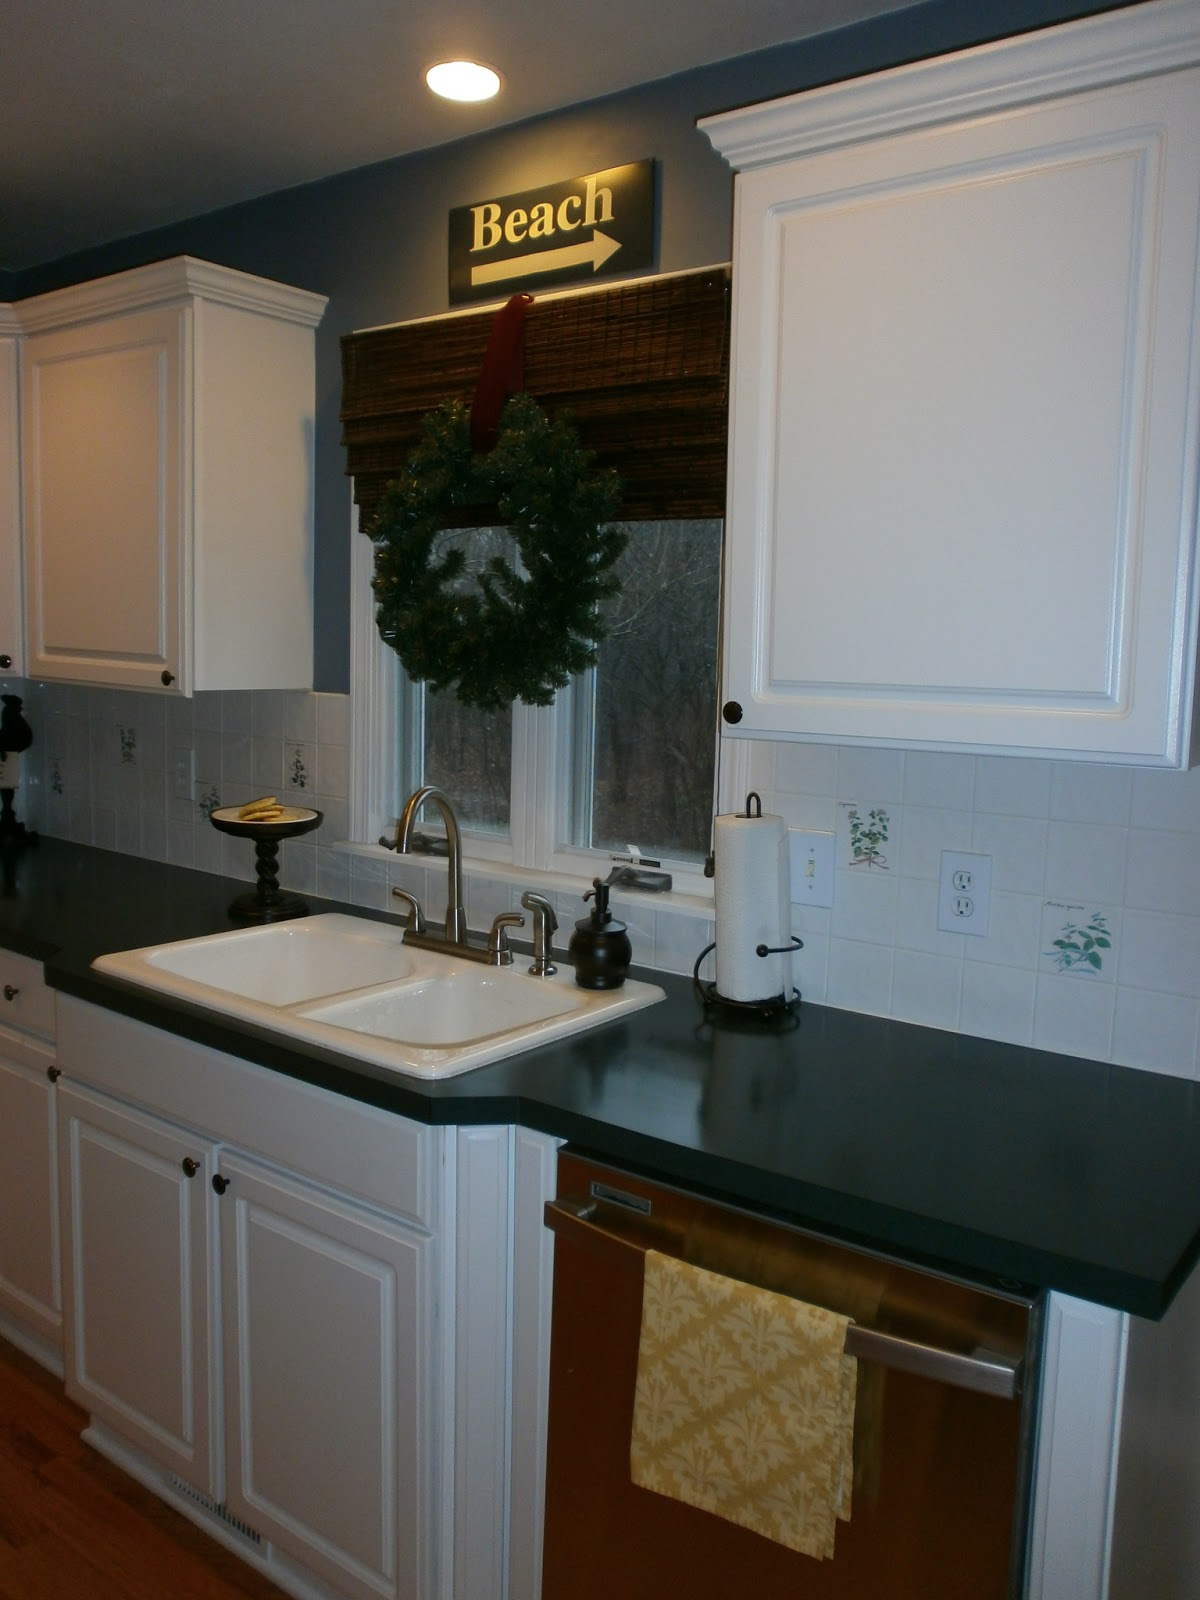 DIY: Painting A Ceramic Tile Backsplash